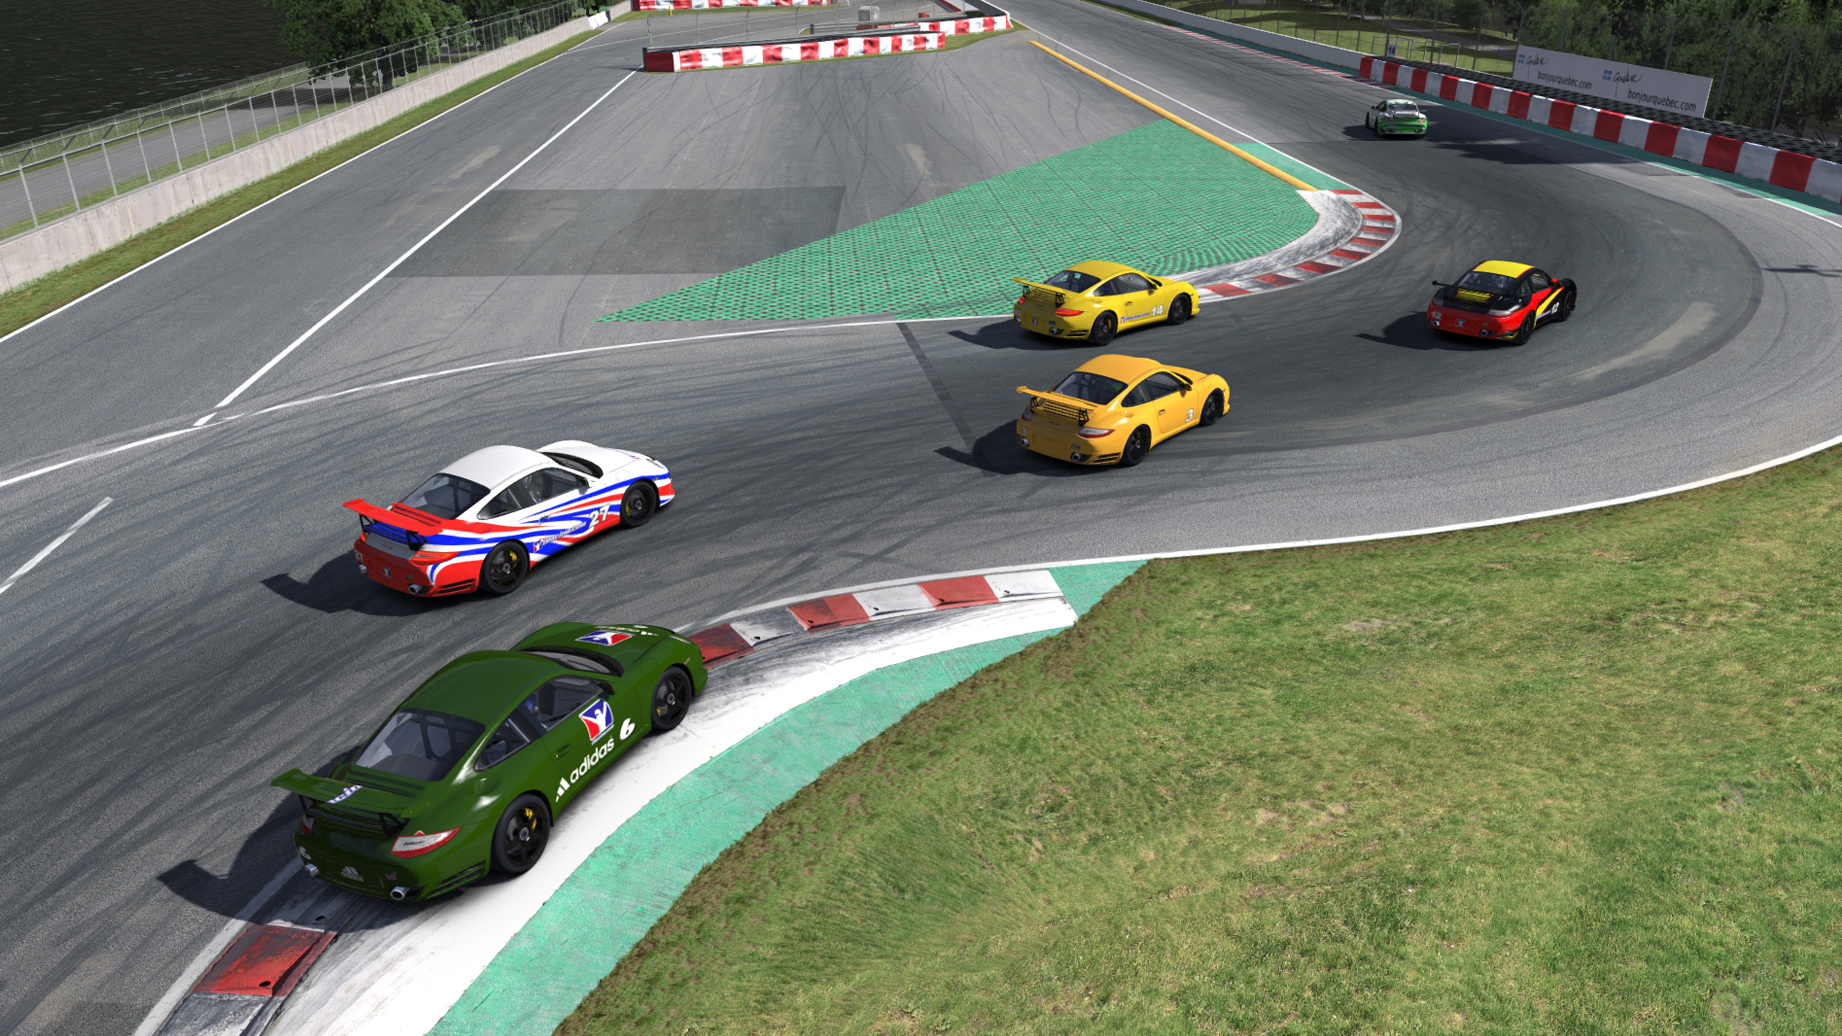 rufs racing hard in iracing